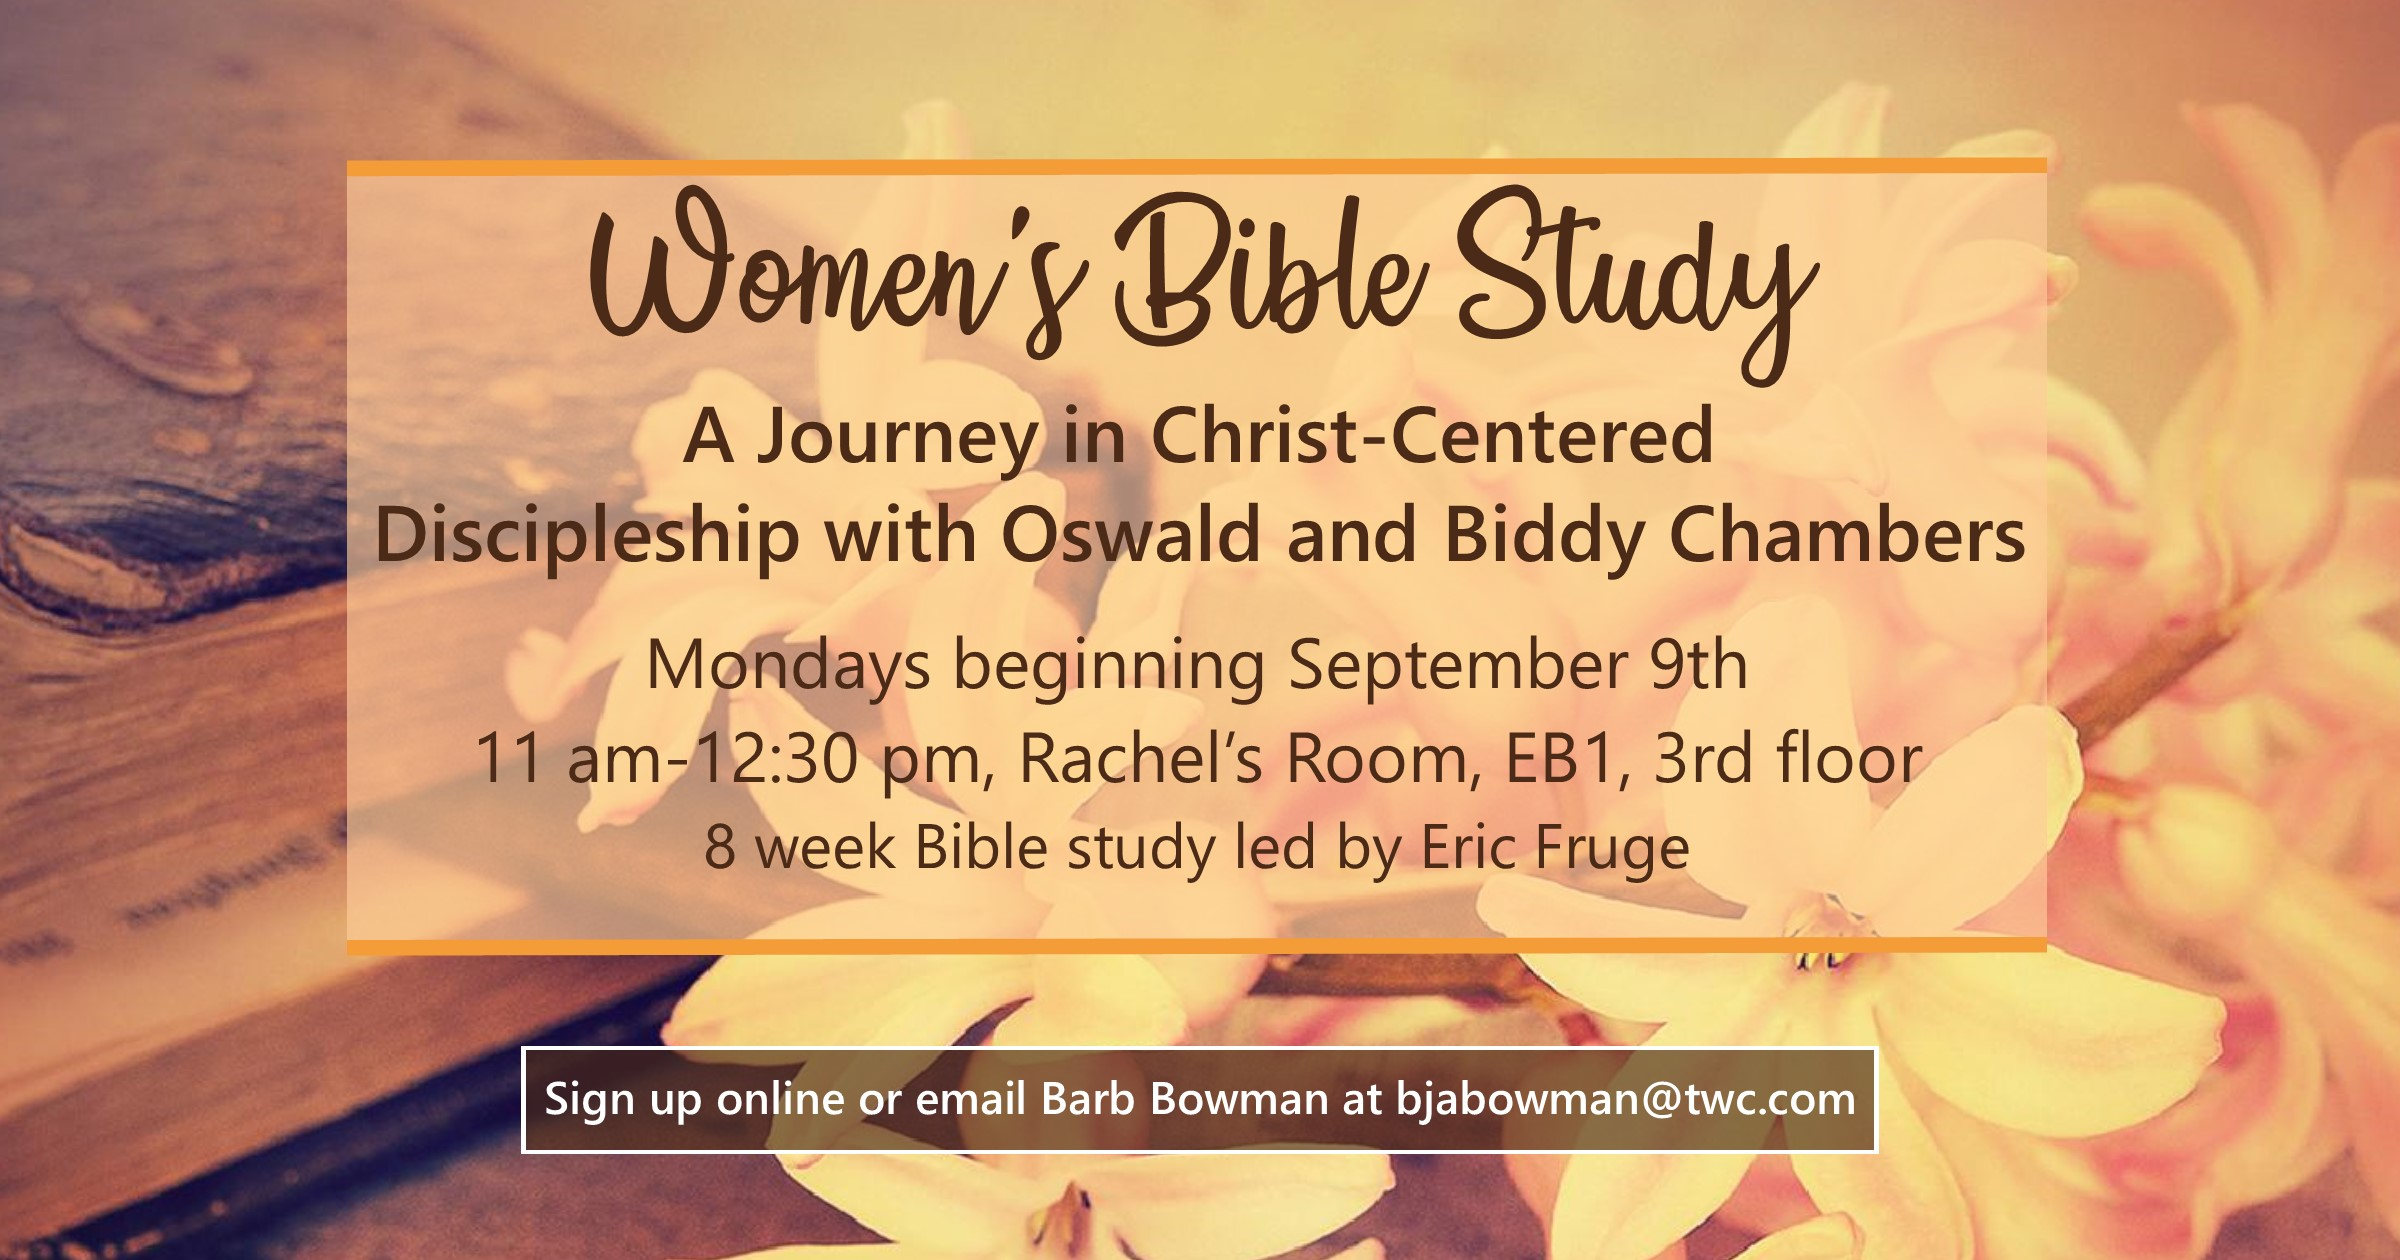 Women Monday Bible Study FB image Fall 2019.jpg